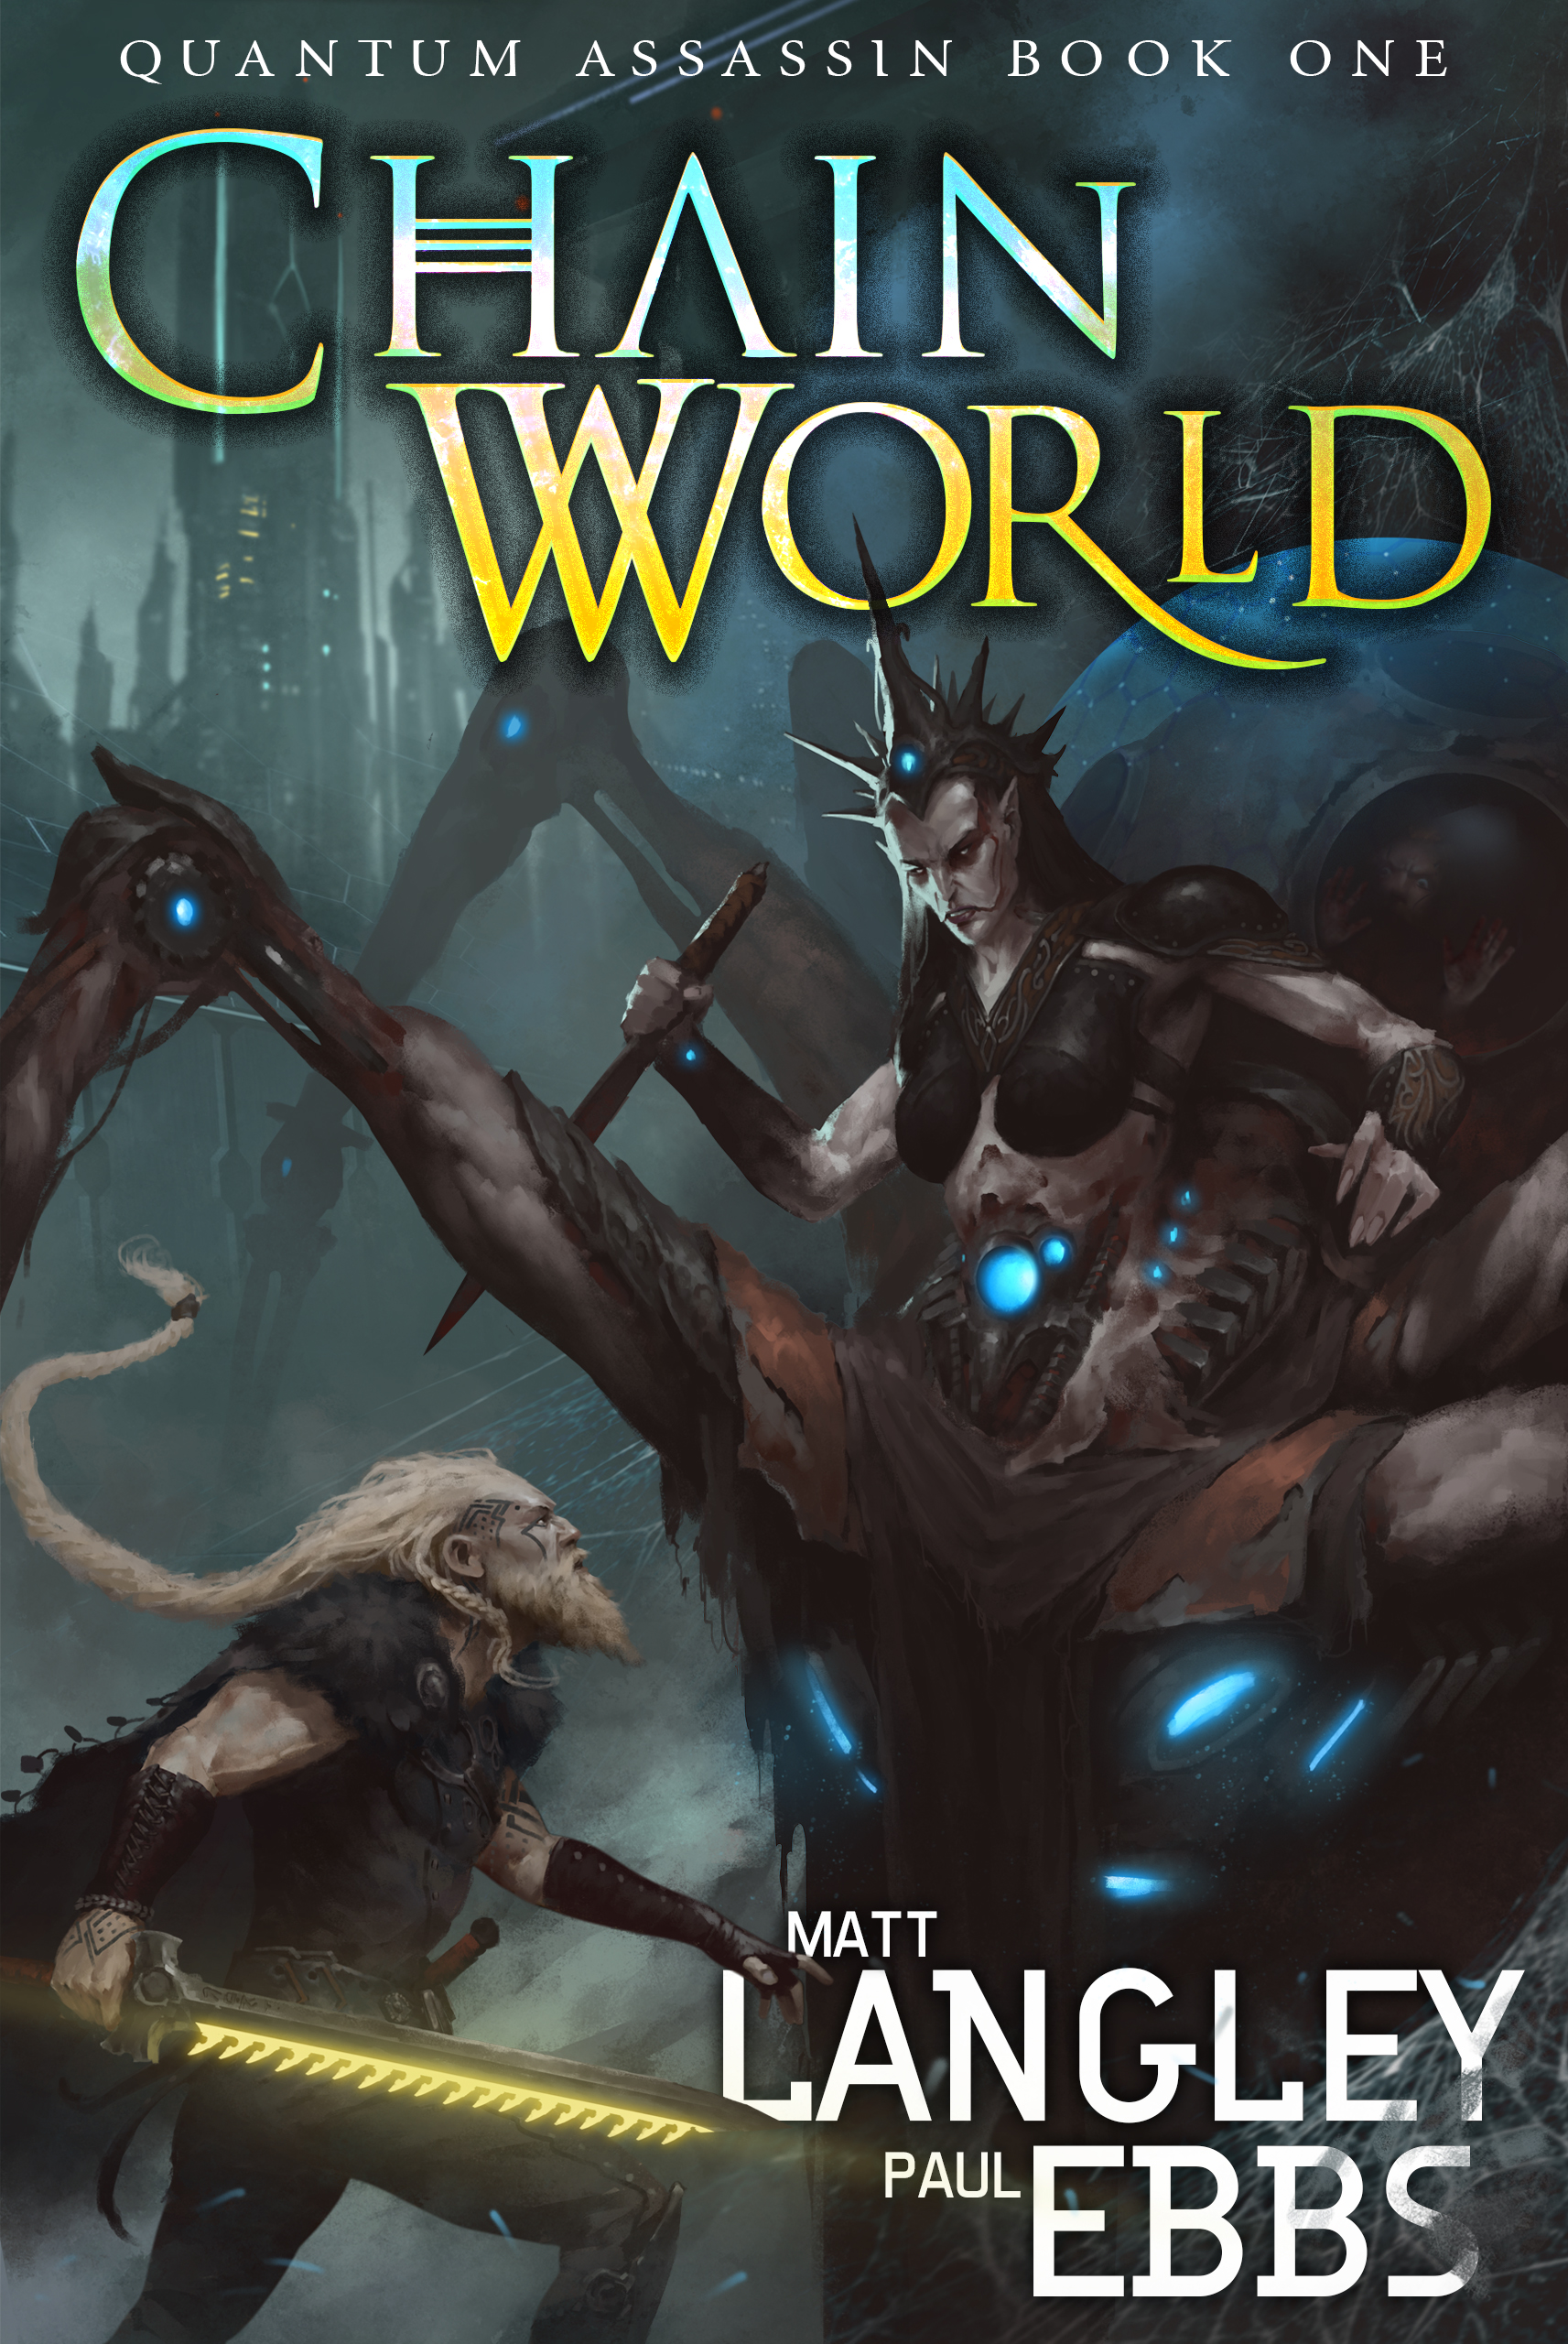 Chainworld   Quantum Assassin Book 1  Matt Langley, Paul Ebs